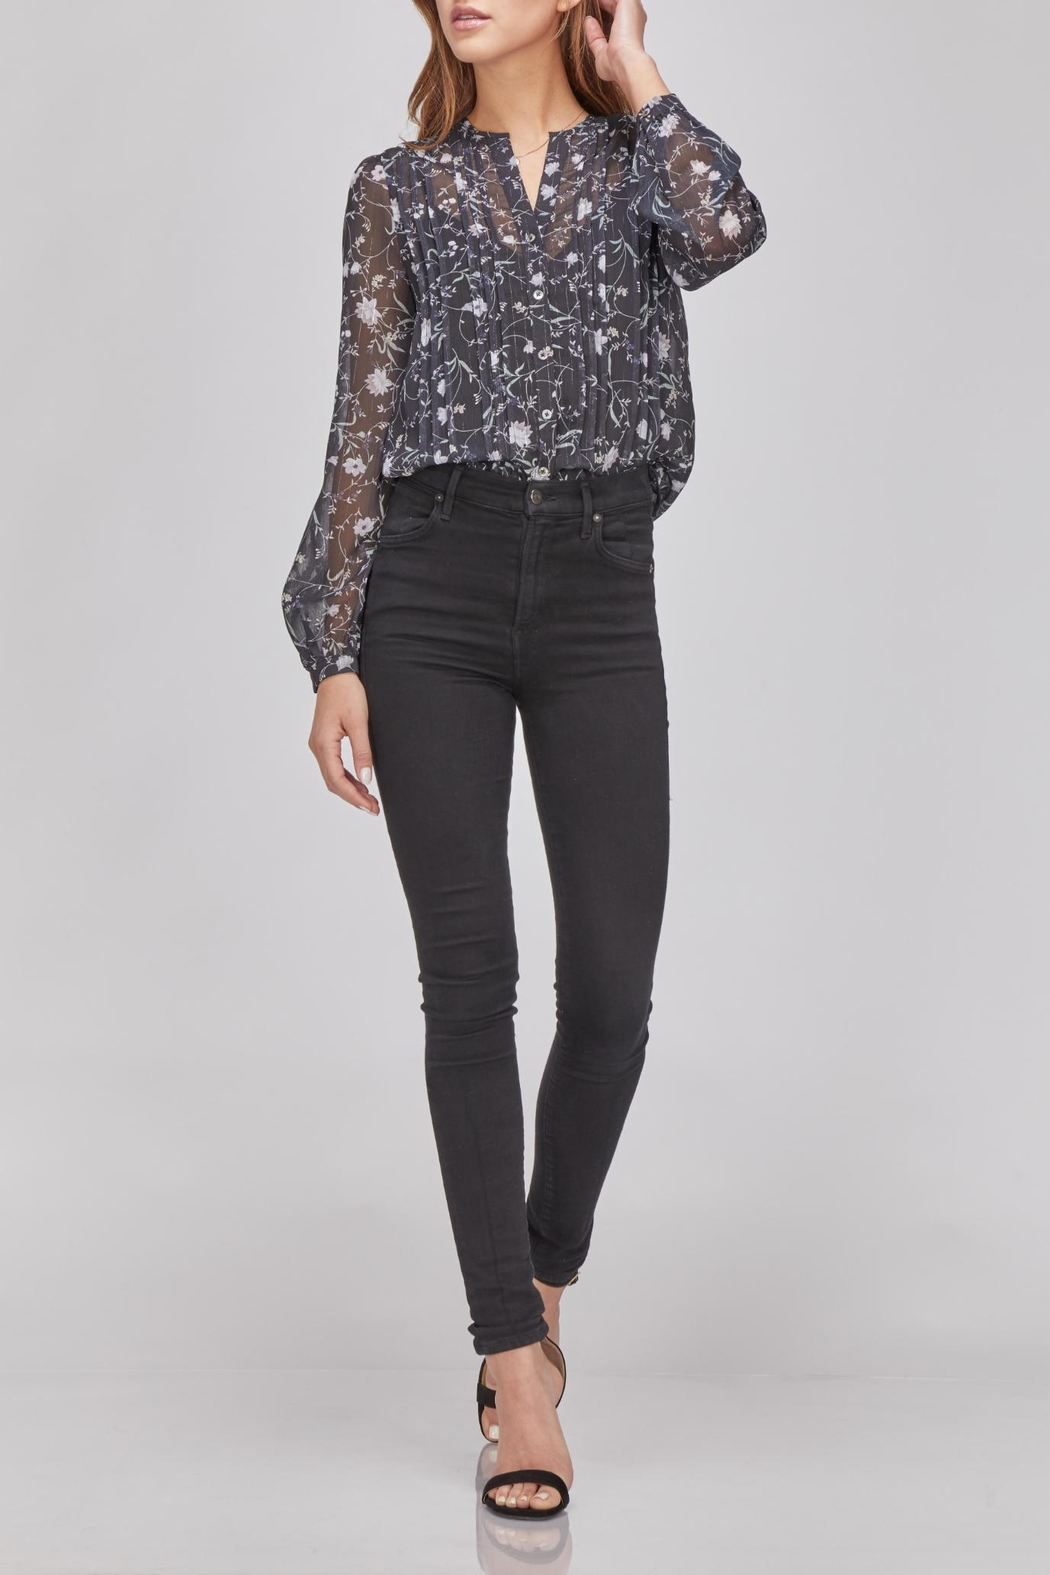 Greylin Floral Button-Up Blouse - Main Image